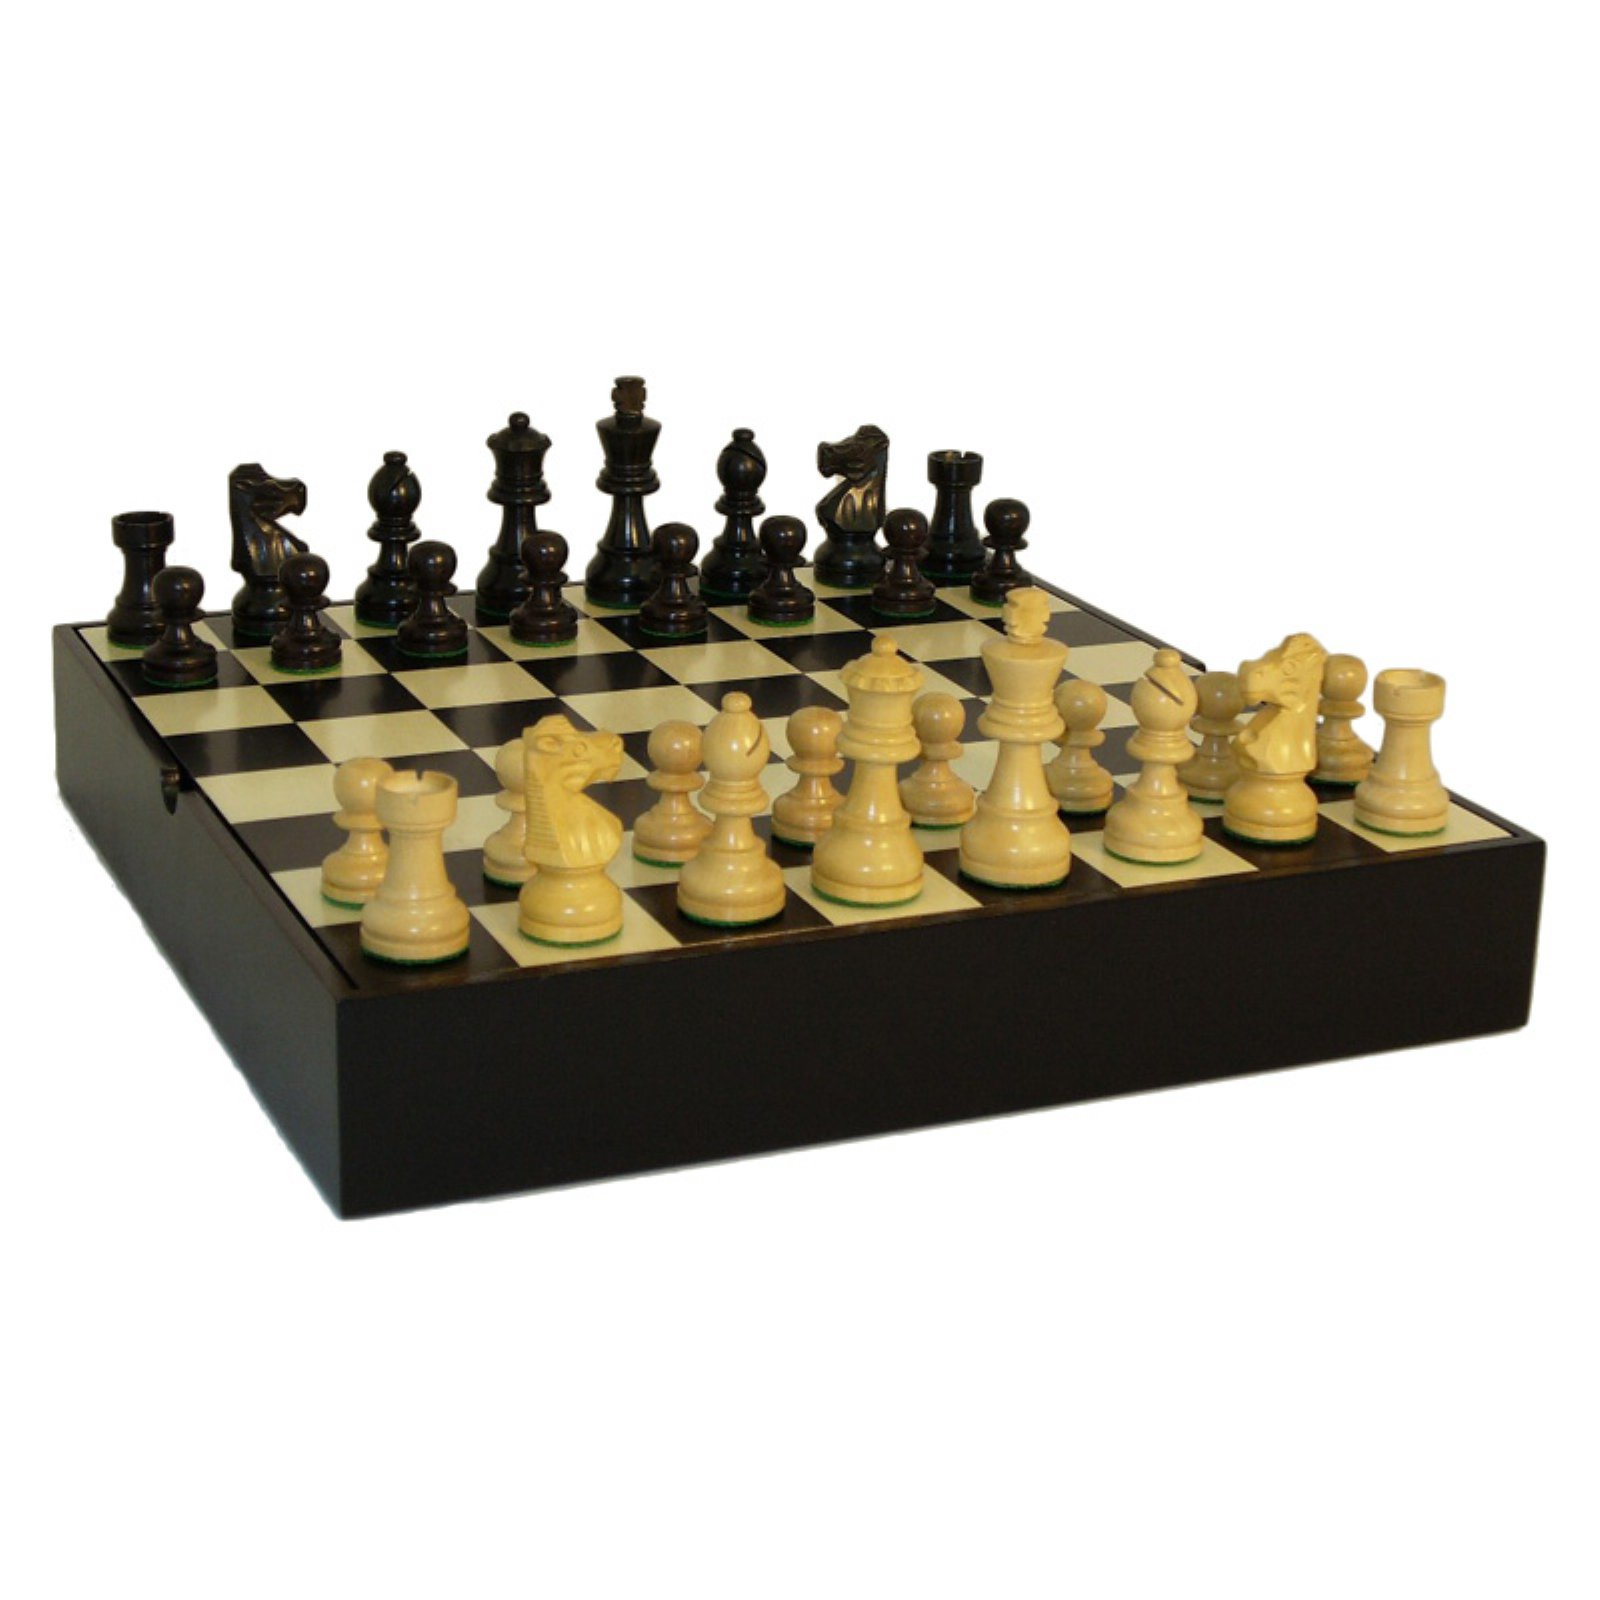 Black and Natural Wood French Knight Chess Set in Inlaid Black and Maple Chest by World Wise Imports